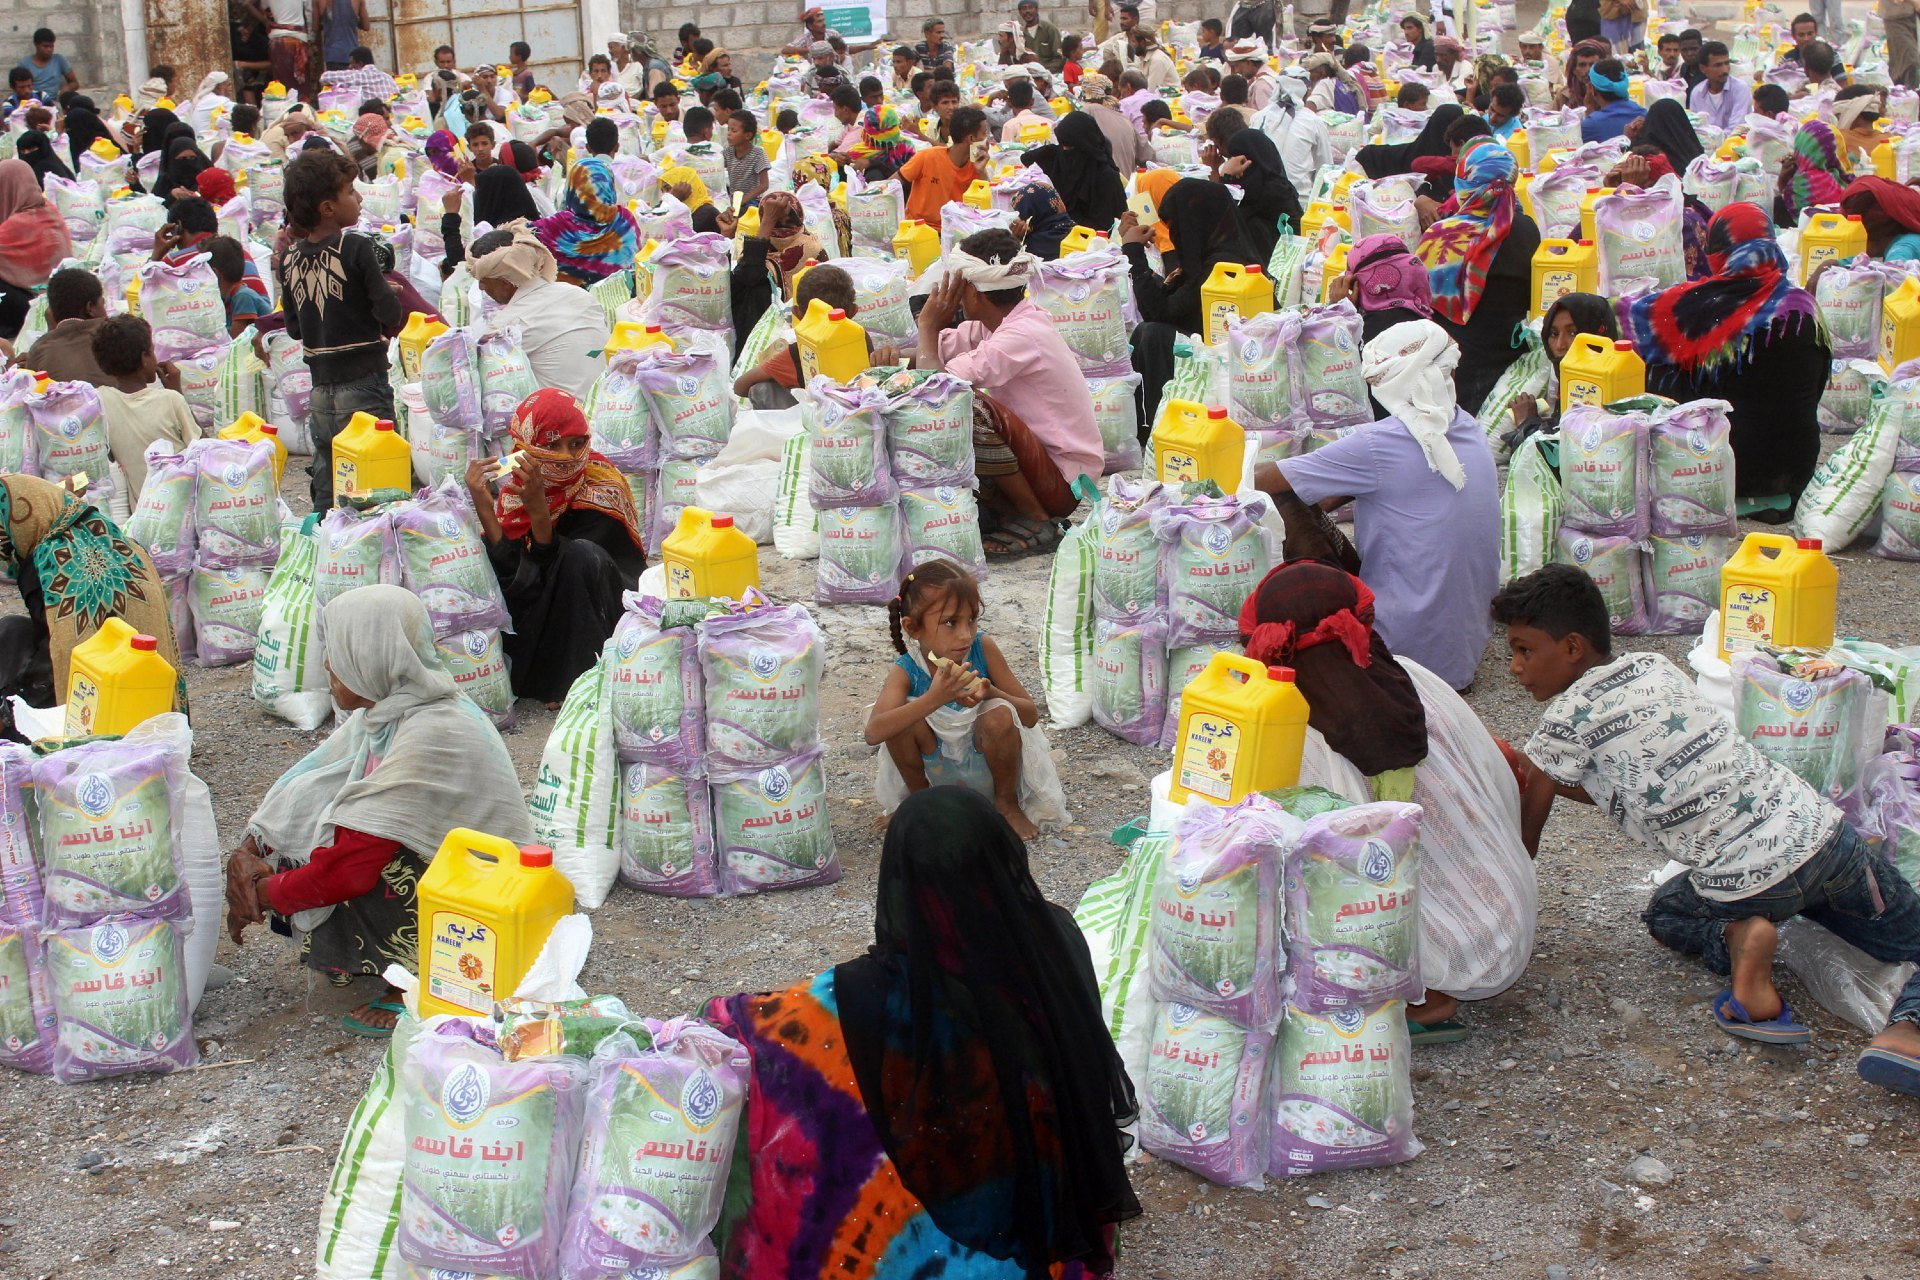 Displaced Yemenis from Durahemi receive food aid in the Red Sea port city of Hodeida (AFP)